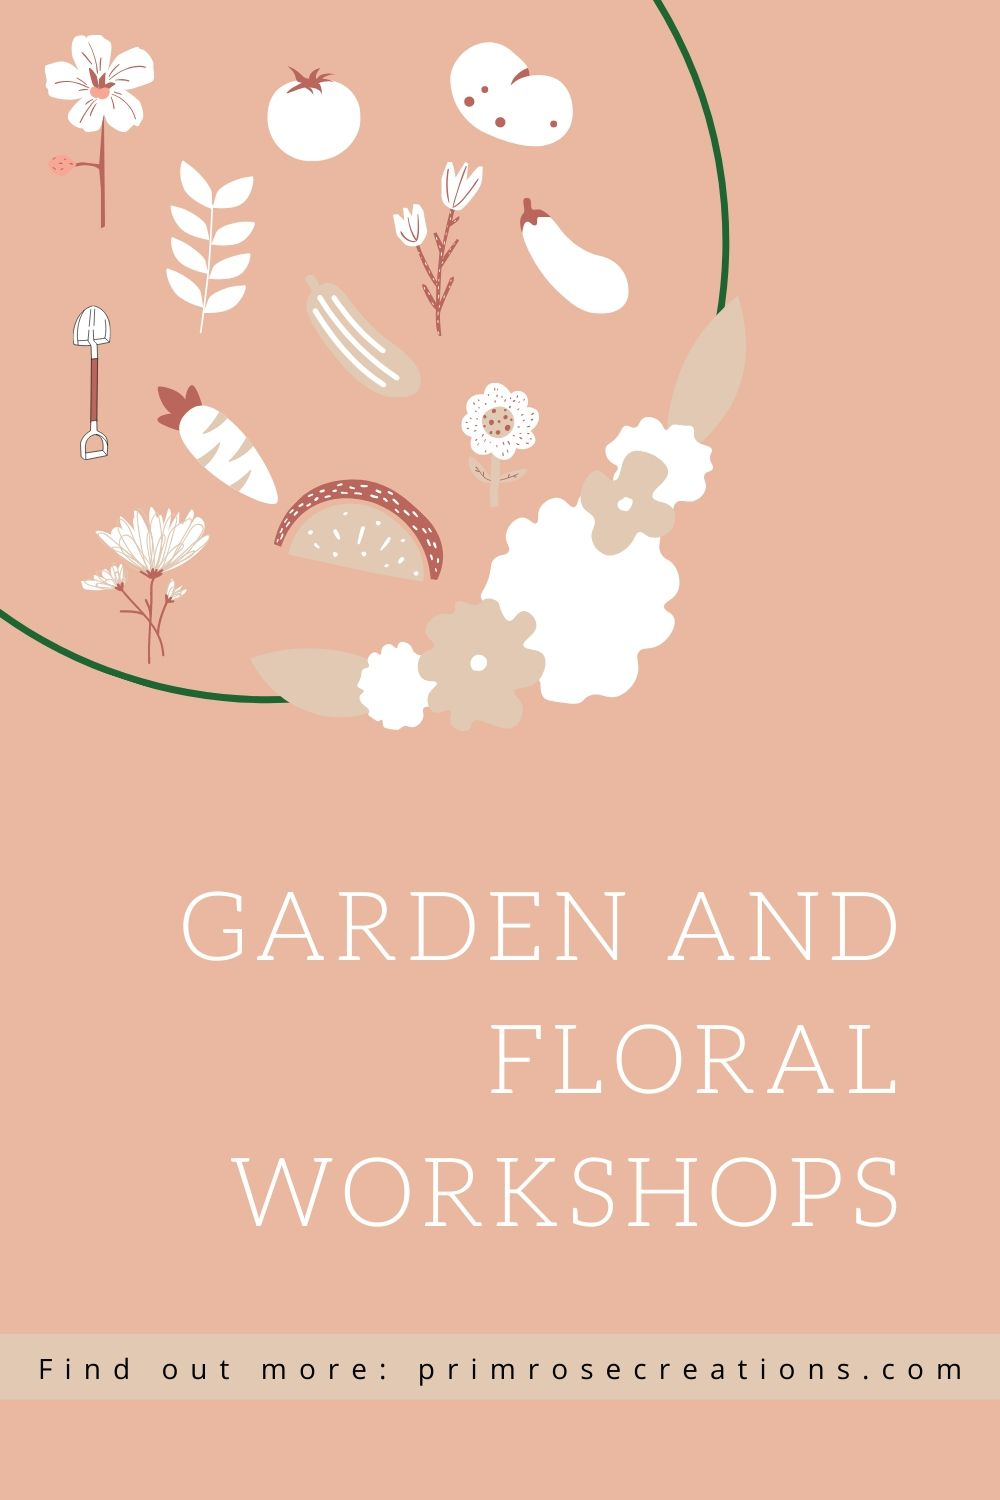 Workshops by Primrose Creations are available in the Amsterdam, NY area and include topics such as container and pollinator gardening and garden planning.